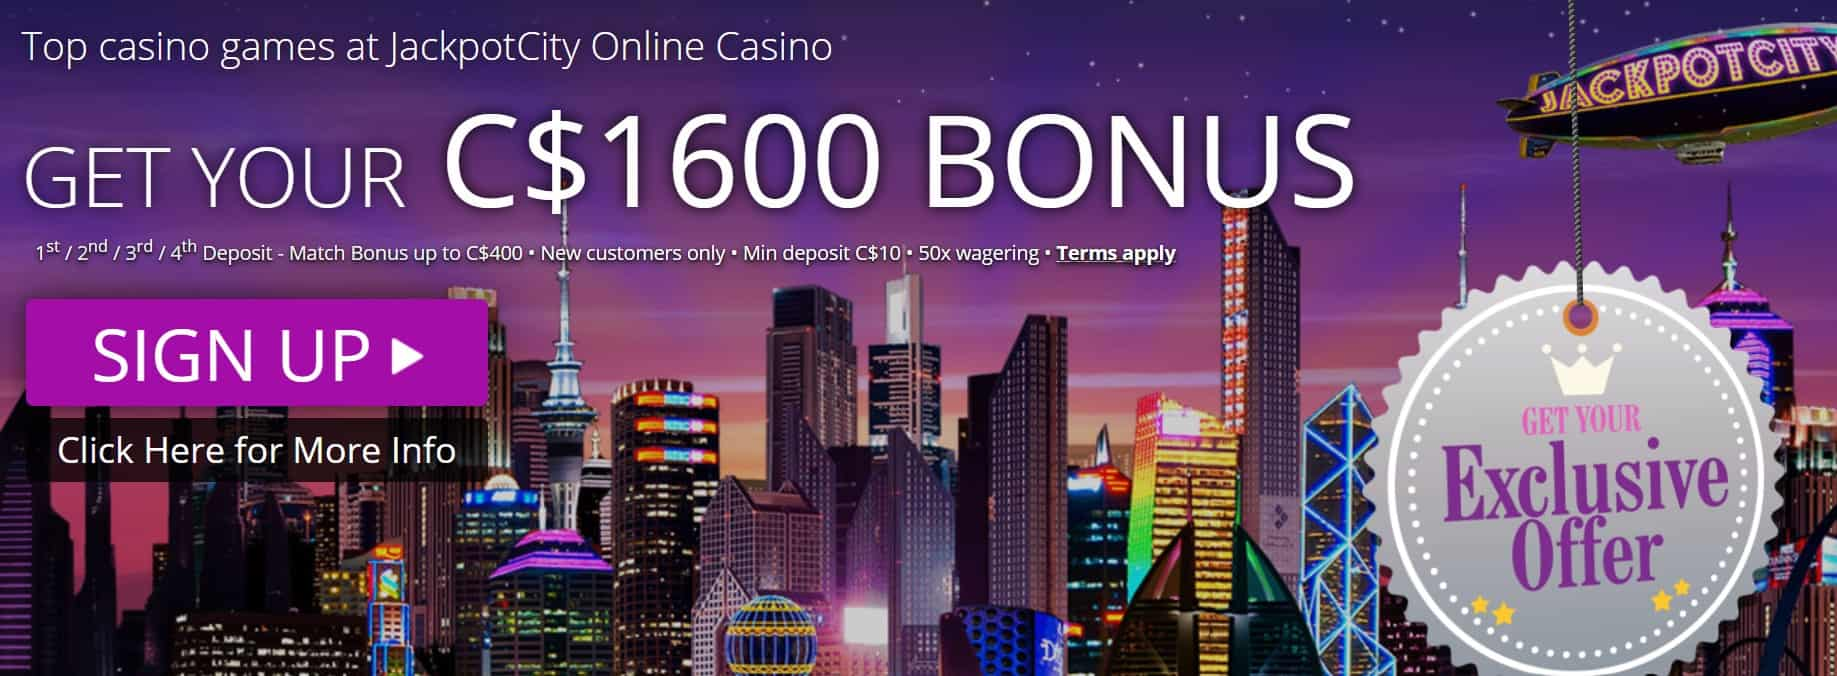 Casino Jackpot City avis : ce qu'on a pu conclure !